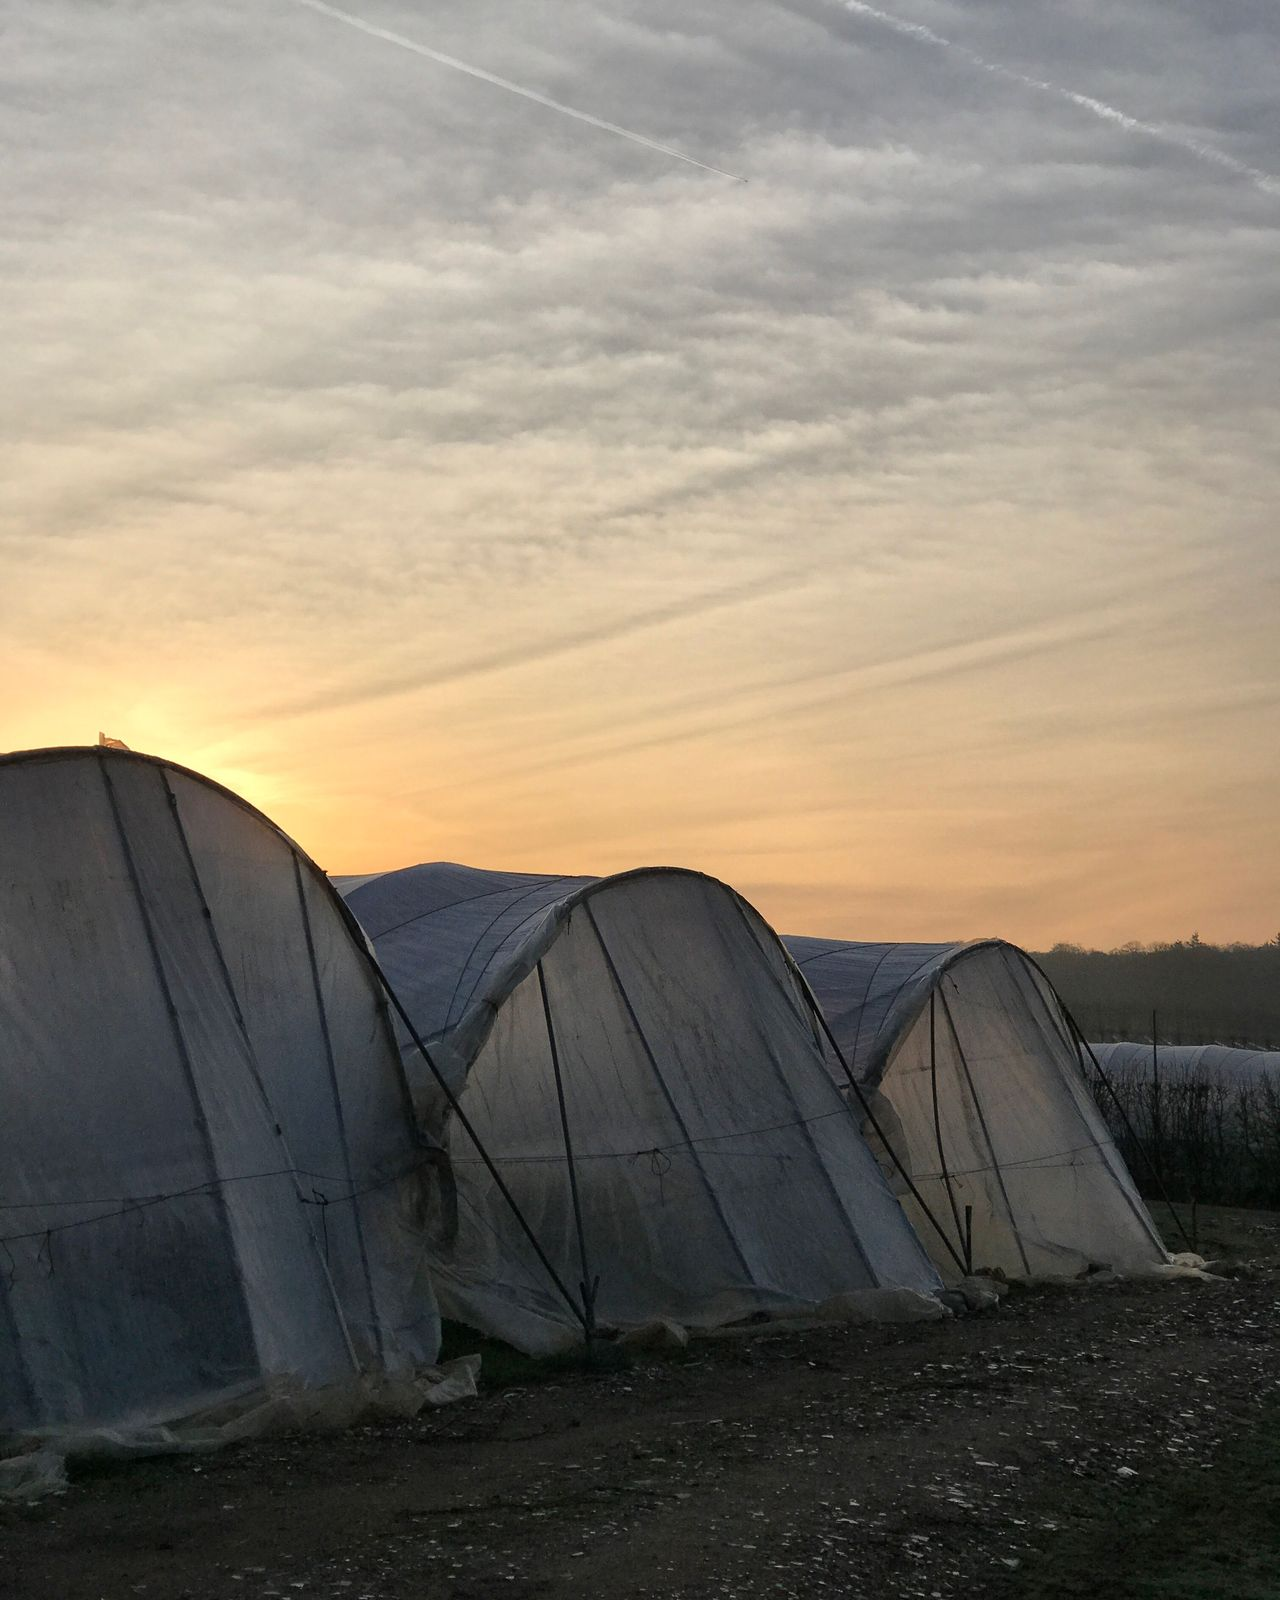 Sunrise over Tuesley Farm in Godalming, Surrey. Farming Farm Sky No People Outdoors Built Structure Sunset Nature Architecture Day Farmland Landscape_Collection Silhouette Silhouettes Polytunnel Polytunnels Beauty In Nature Sunrise Sunrise_sunsets_aroundworld Uk Surrey Hills Surrey Rural Godalming Nature